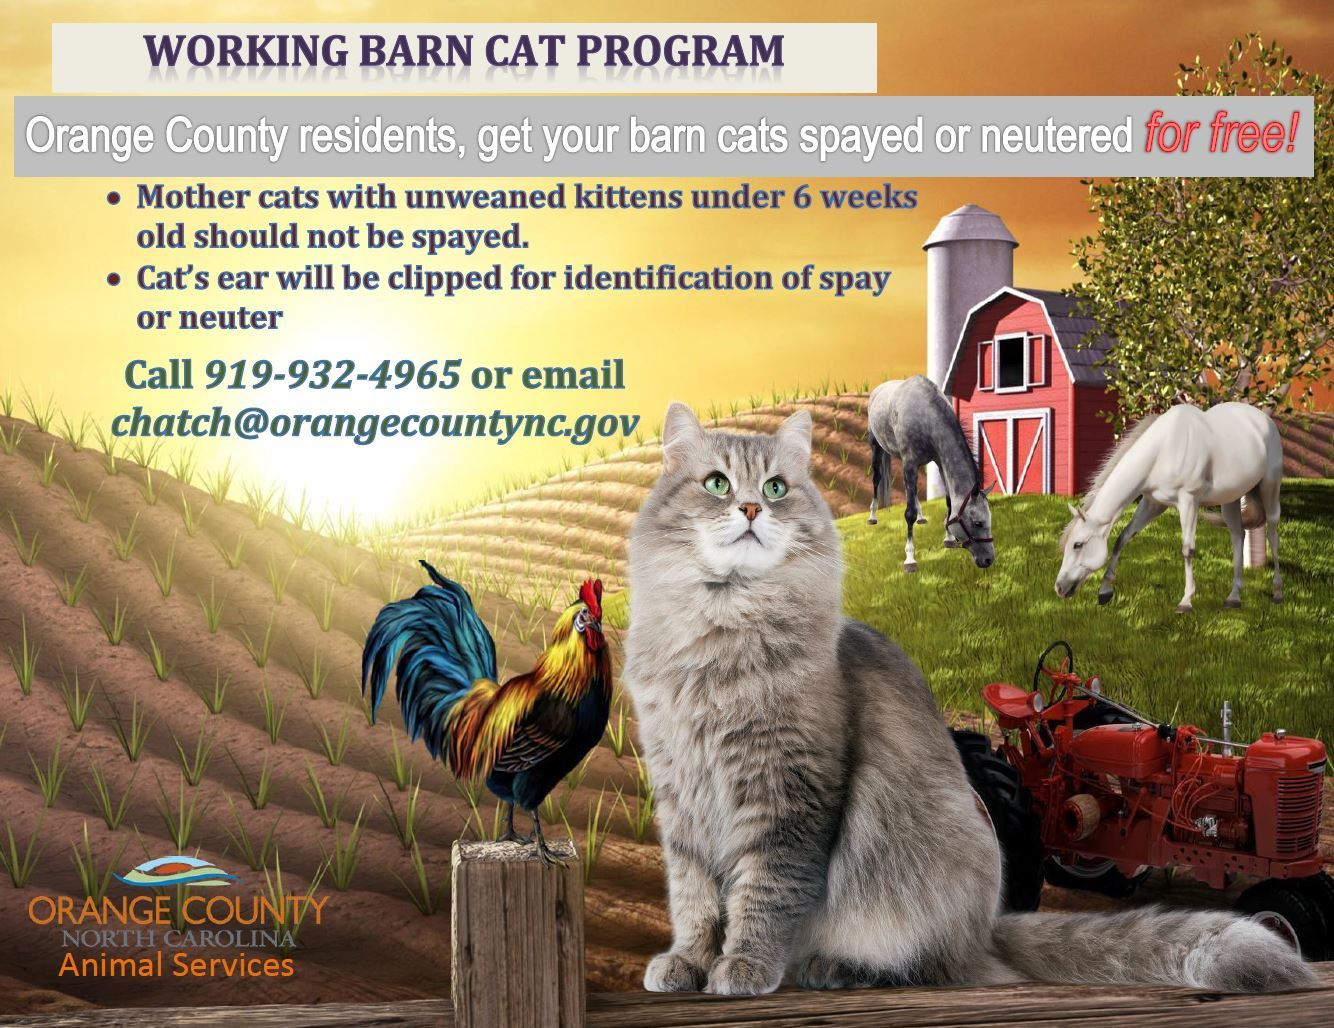 Working Barn Cat Program